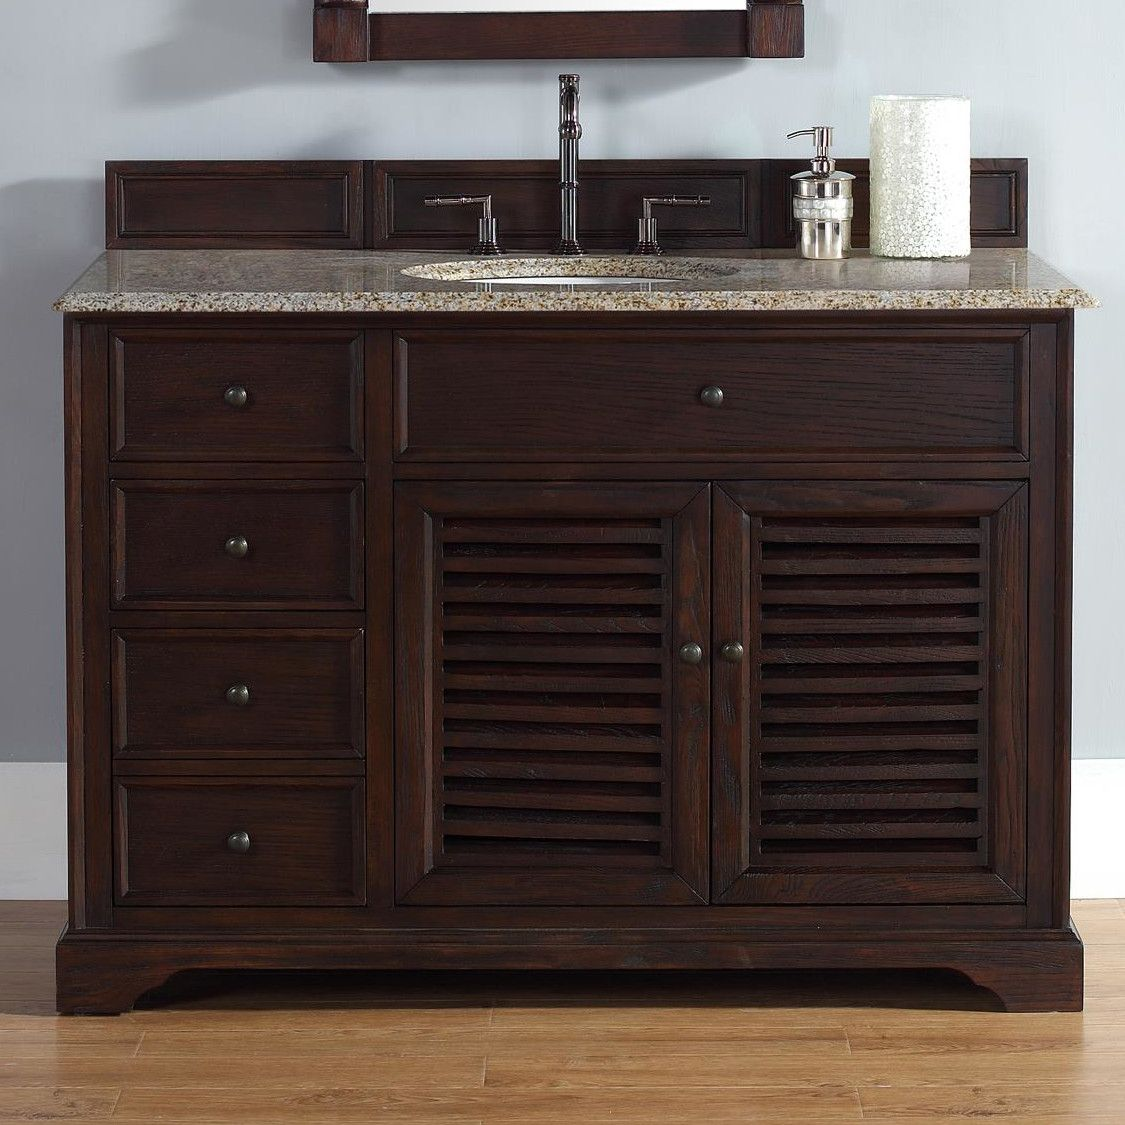 "James Martin Furniture Savannah 48"" Single Bathroom Vanity Set Beauteous Bathroom Cabinet Reviews Decorating Design"